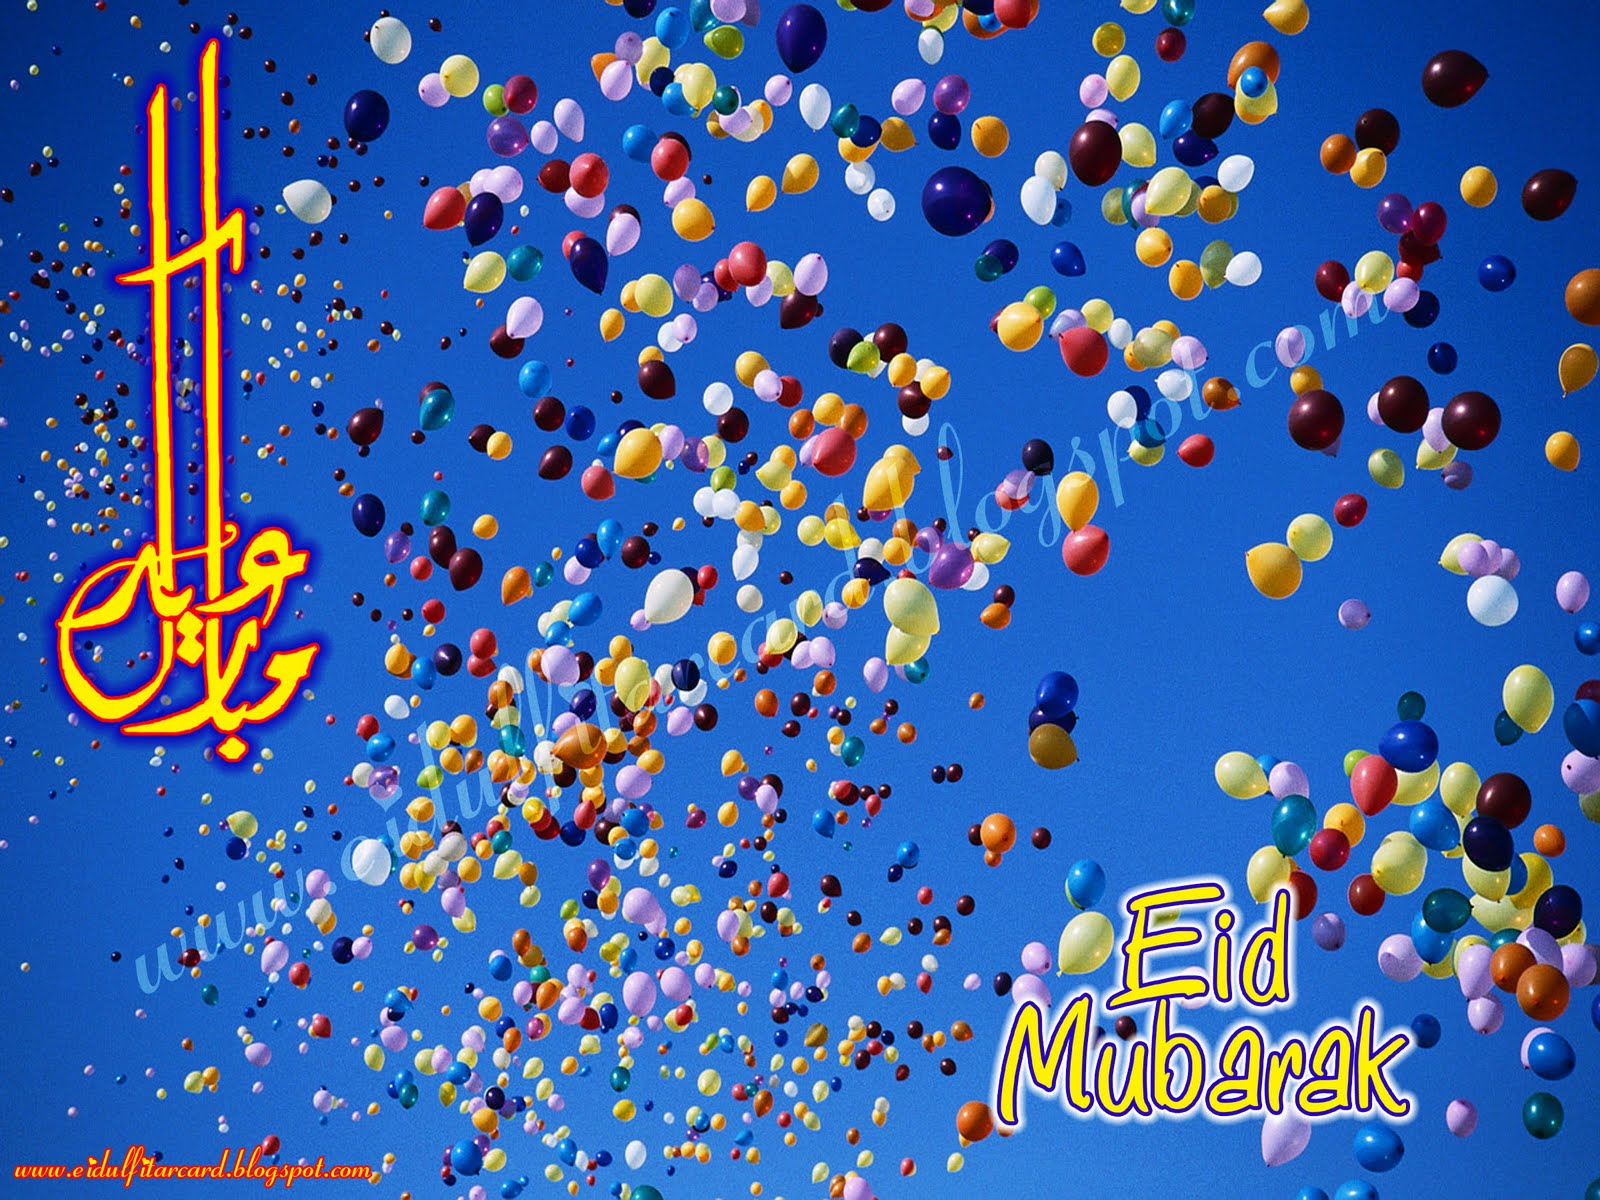 Right diligent 15 fresh eid greeting cards 2013 eid greeting cards kristyandbryce Choice Image